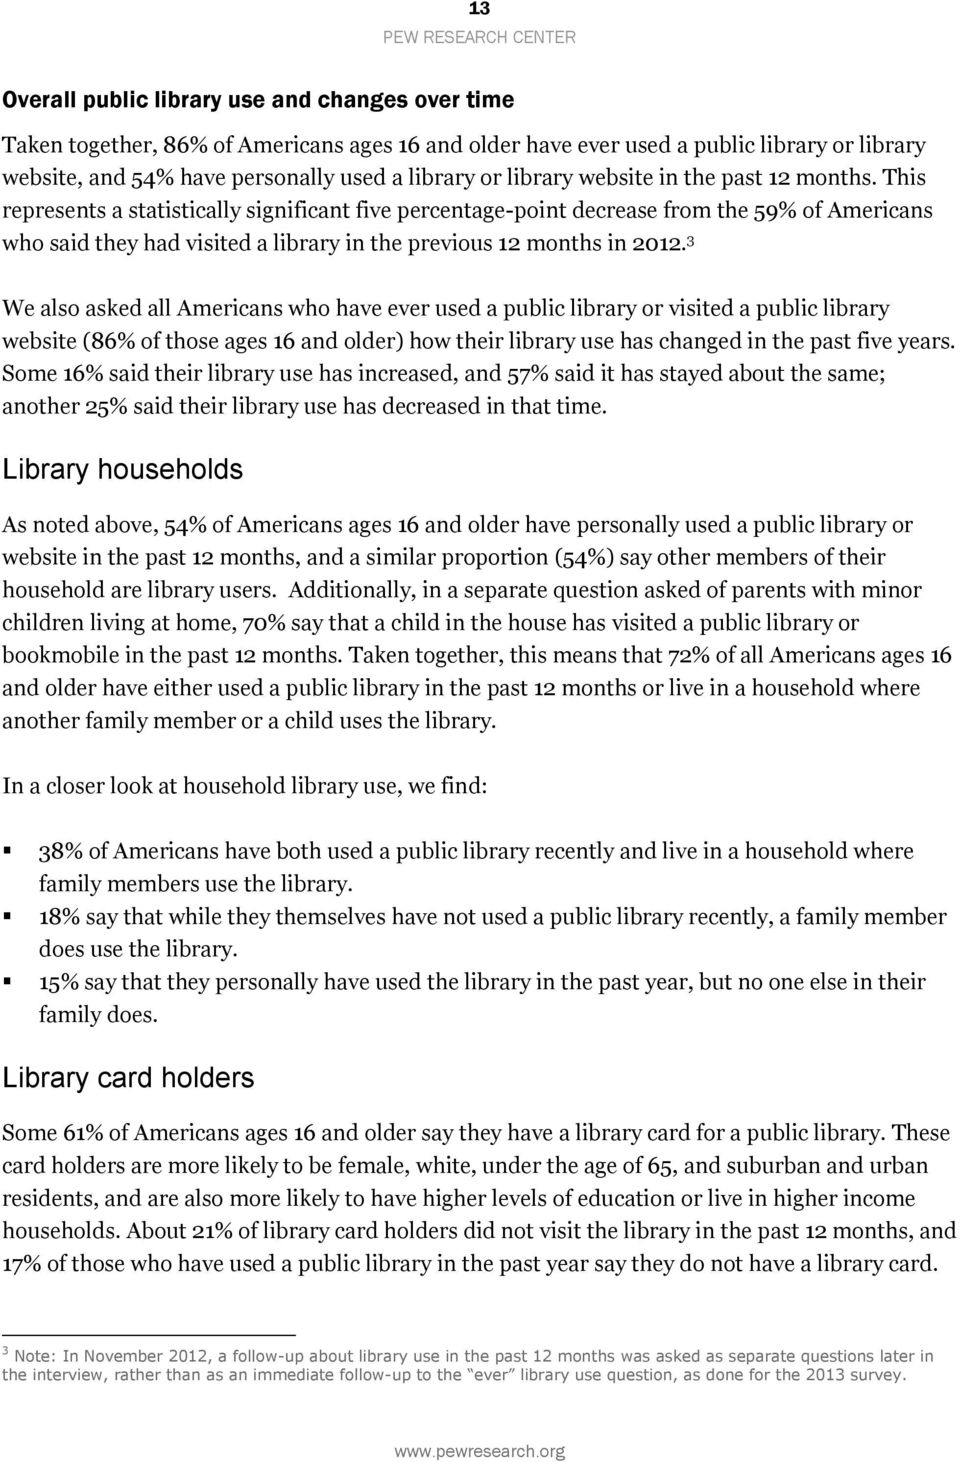 This represents a statistically significant five percentage-point decrease from the 59% of Americans who said they had visited a library in the previous 12 months in 2012.